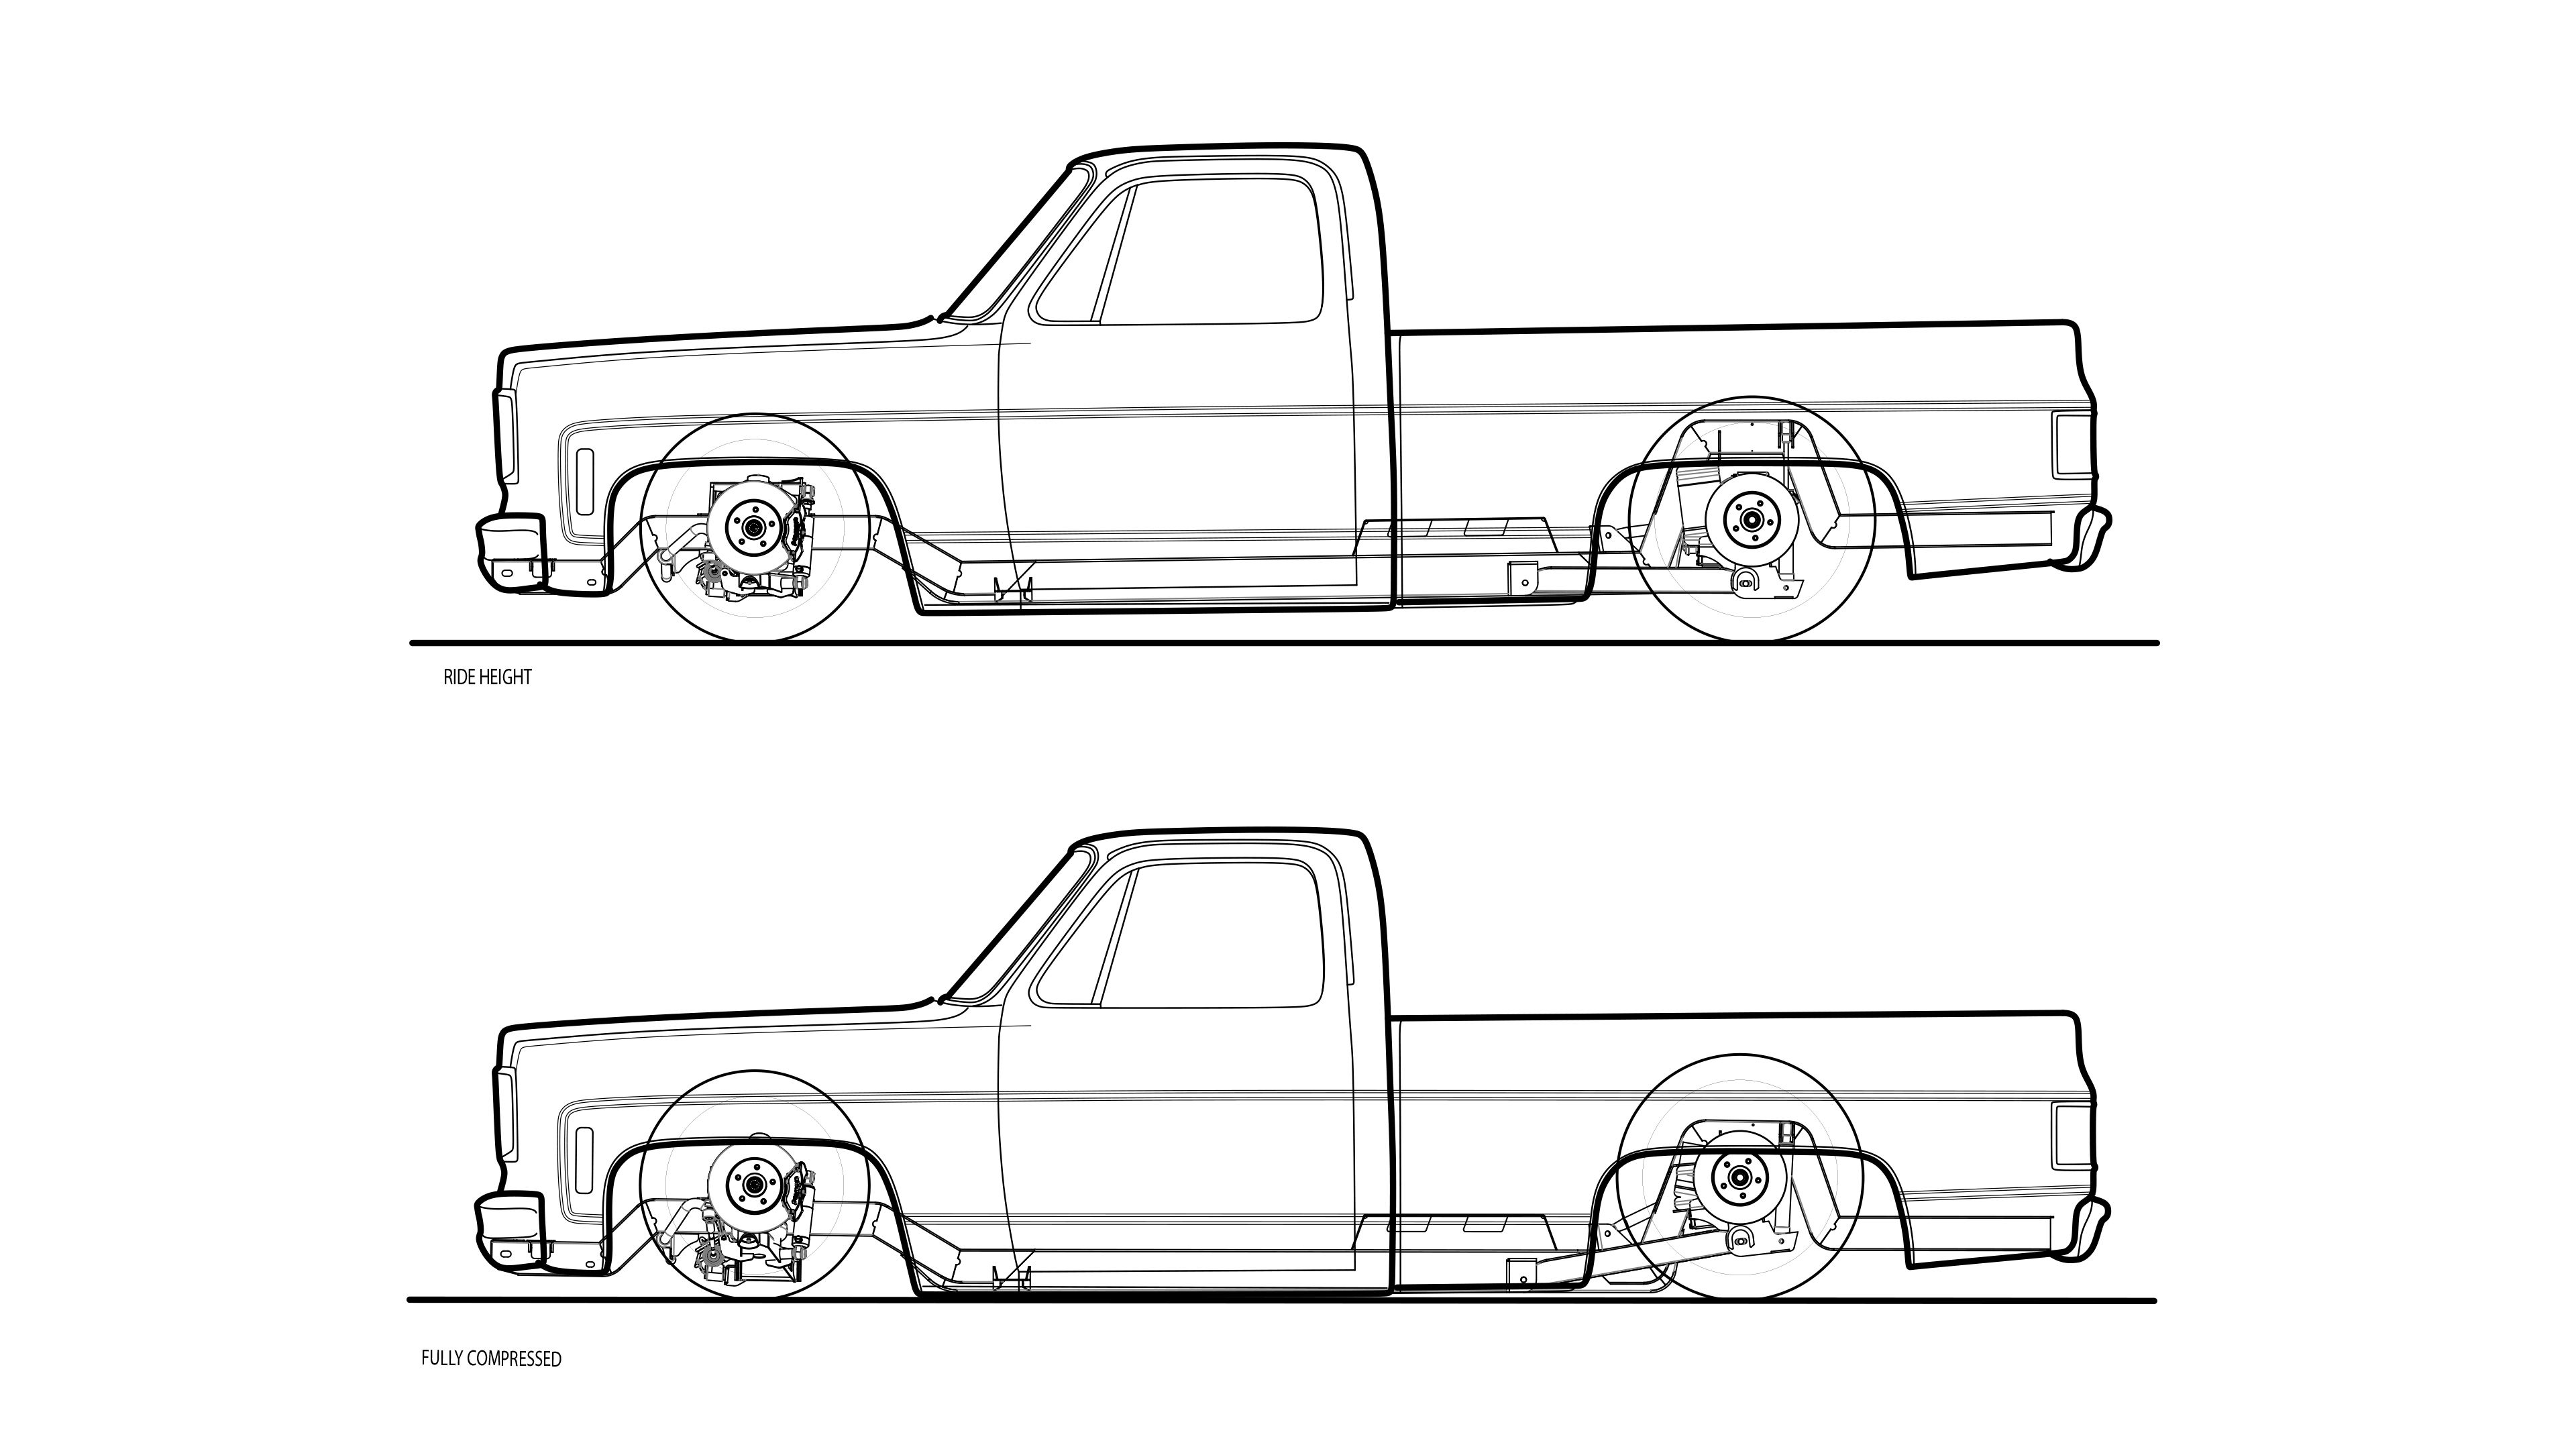 Rd 2329 Wiring Diagram Gmc Truck Coloring Pages 1960 Ford Truck Wiring Diagram Free Diagram